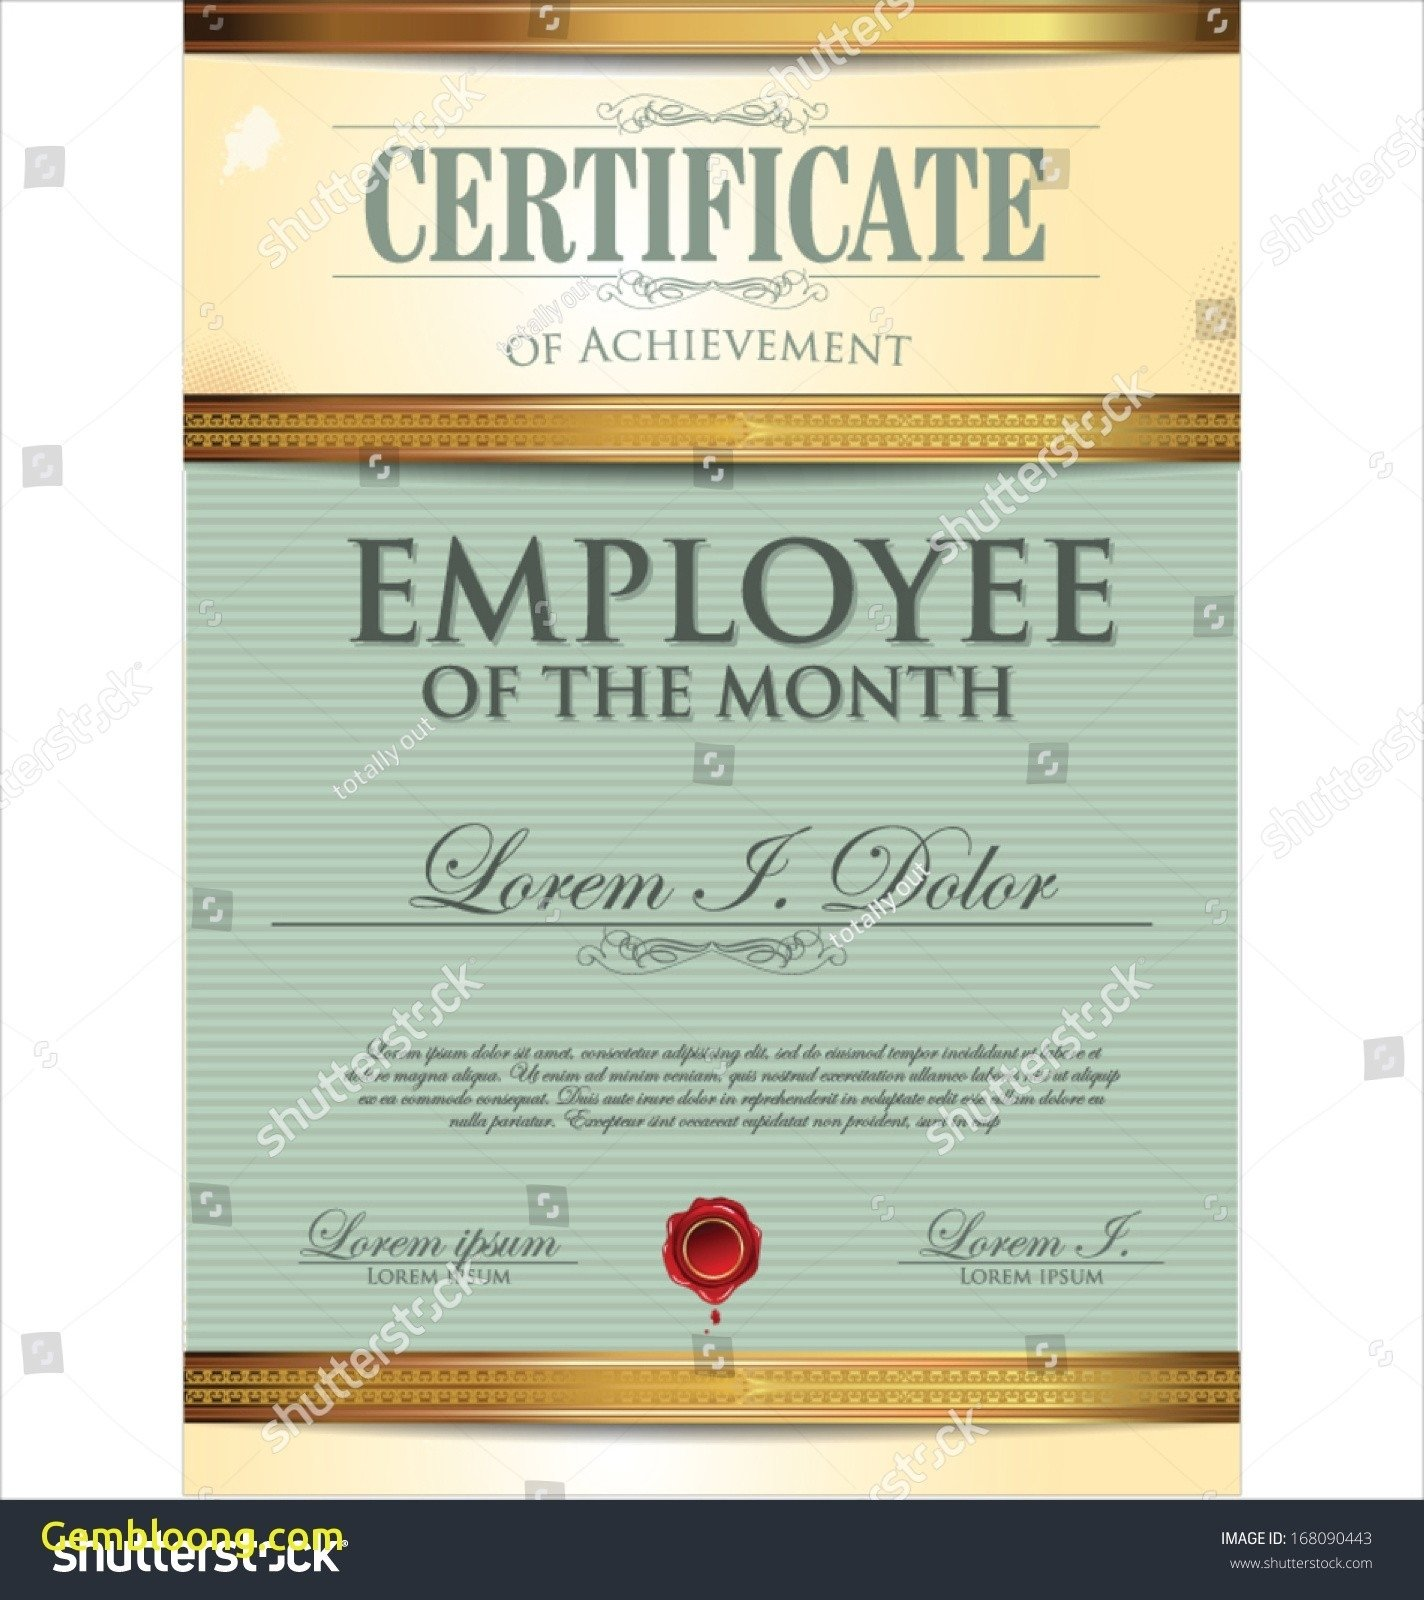 10 Awesome Employee Of The Month Ideas bunch ideas of free employee of the month certificate template with